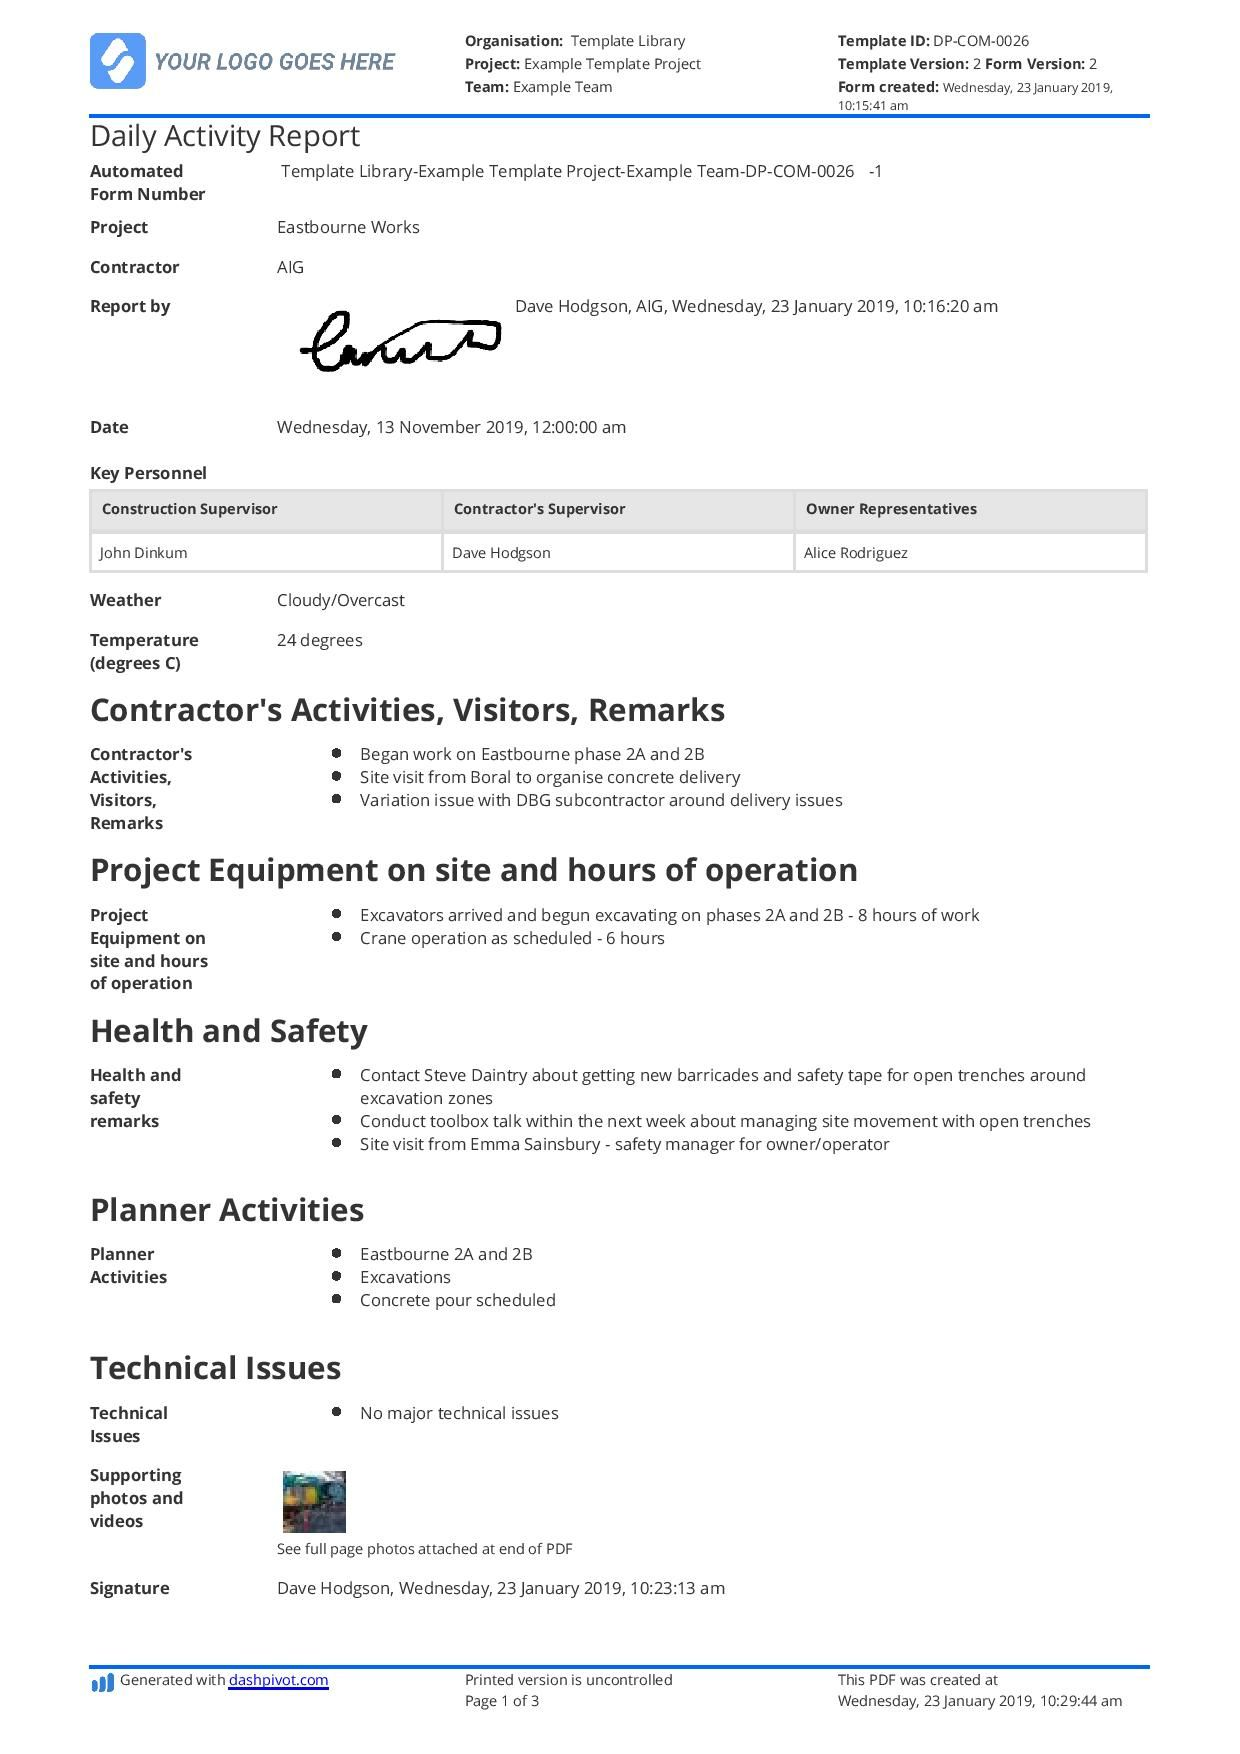 The Marvelous Daily Activity Report Template Free And Better Than